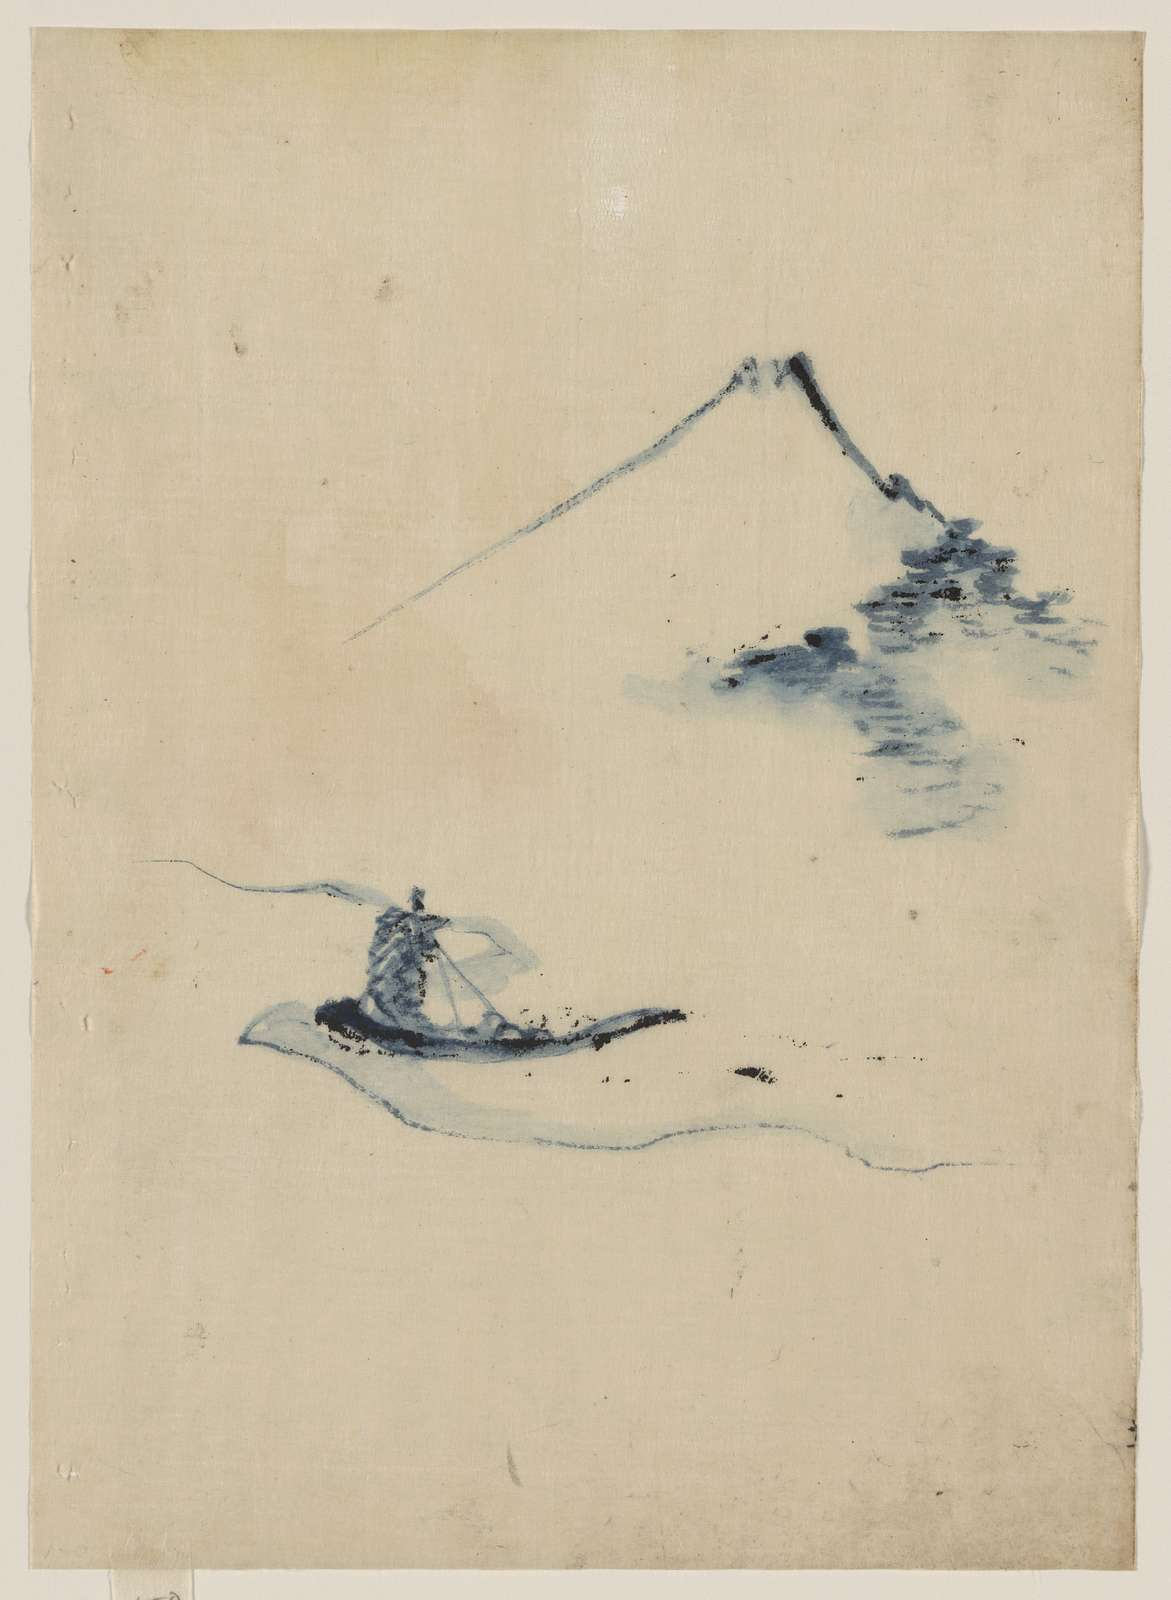 [A person in a small boat on a river with Mount Fuji in the background]